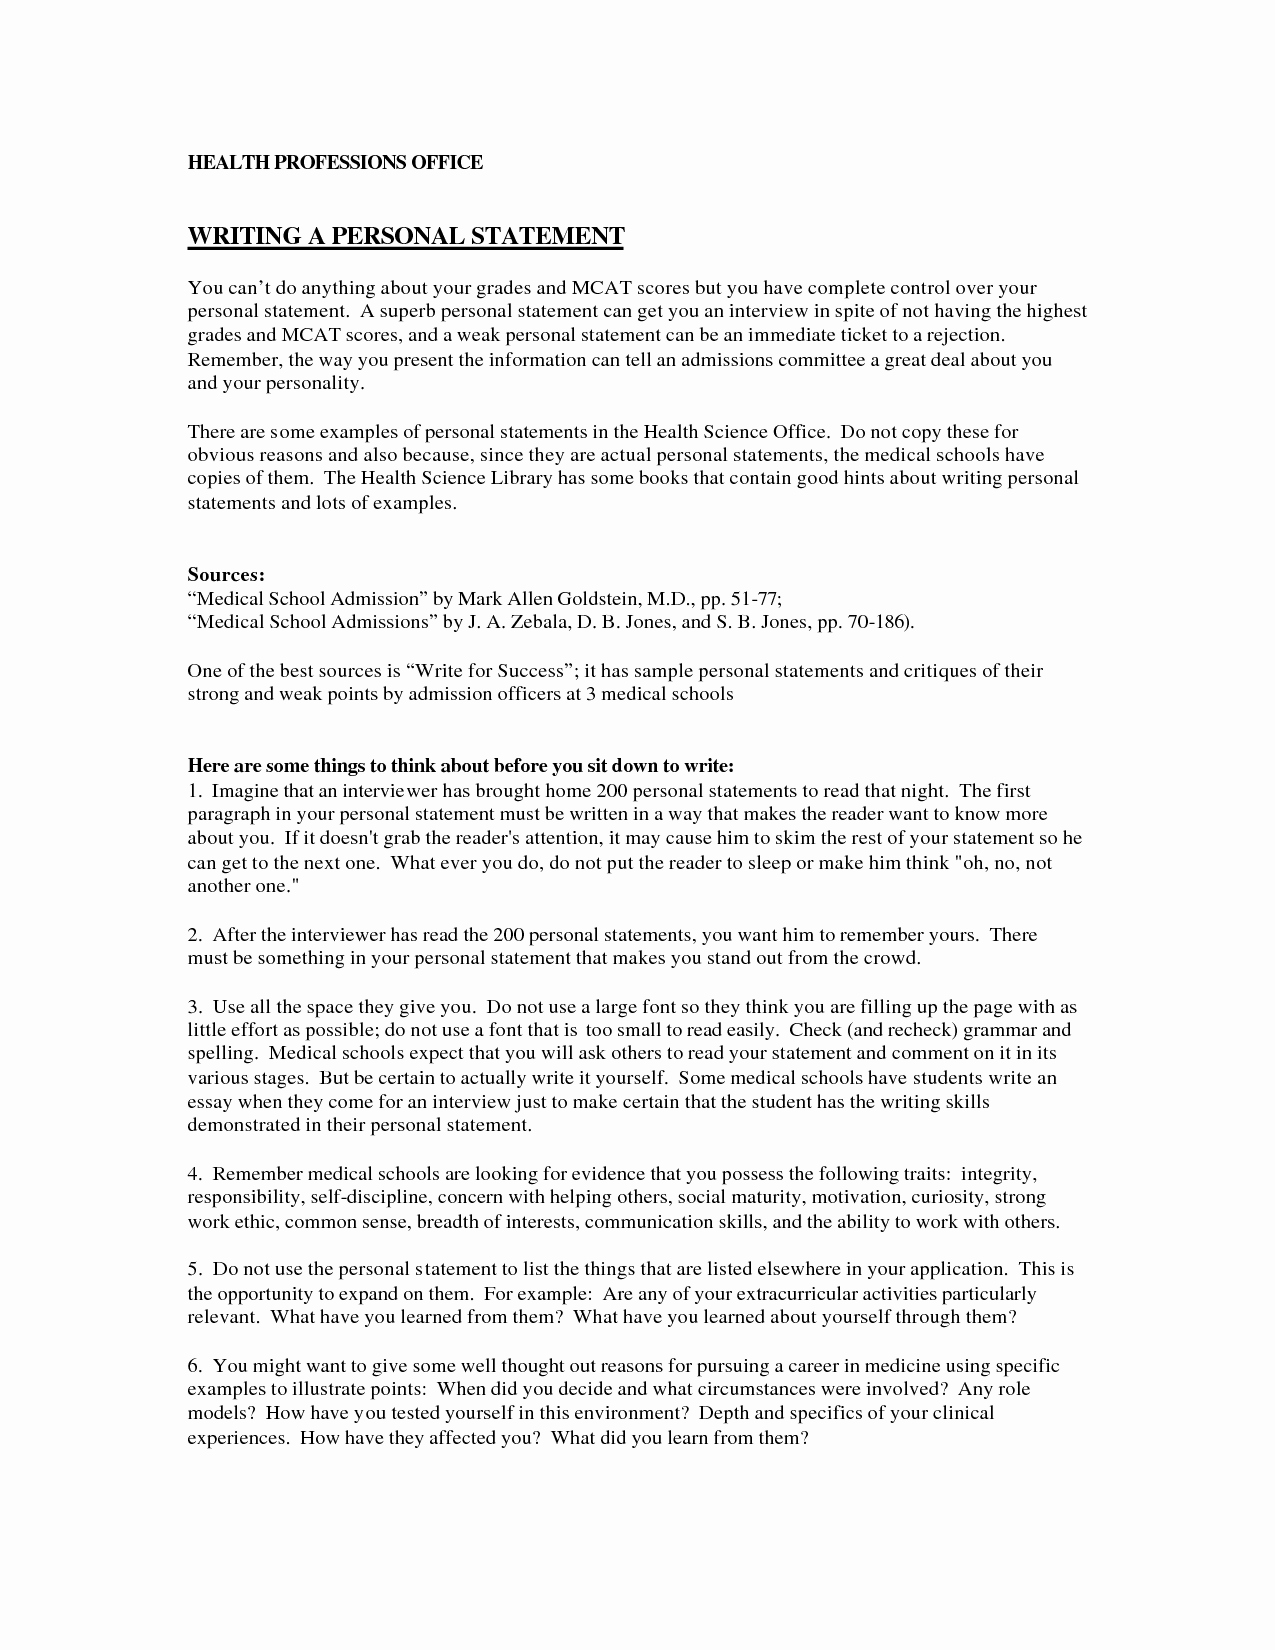 Personal Statement Template for College New Personal Statement Law School Examples Best Template